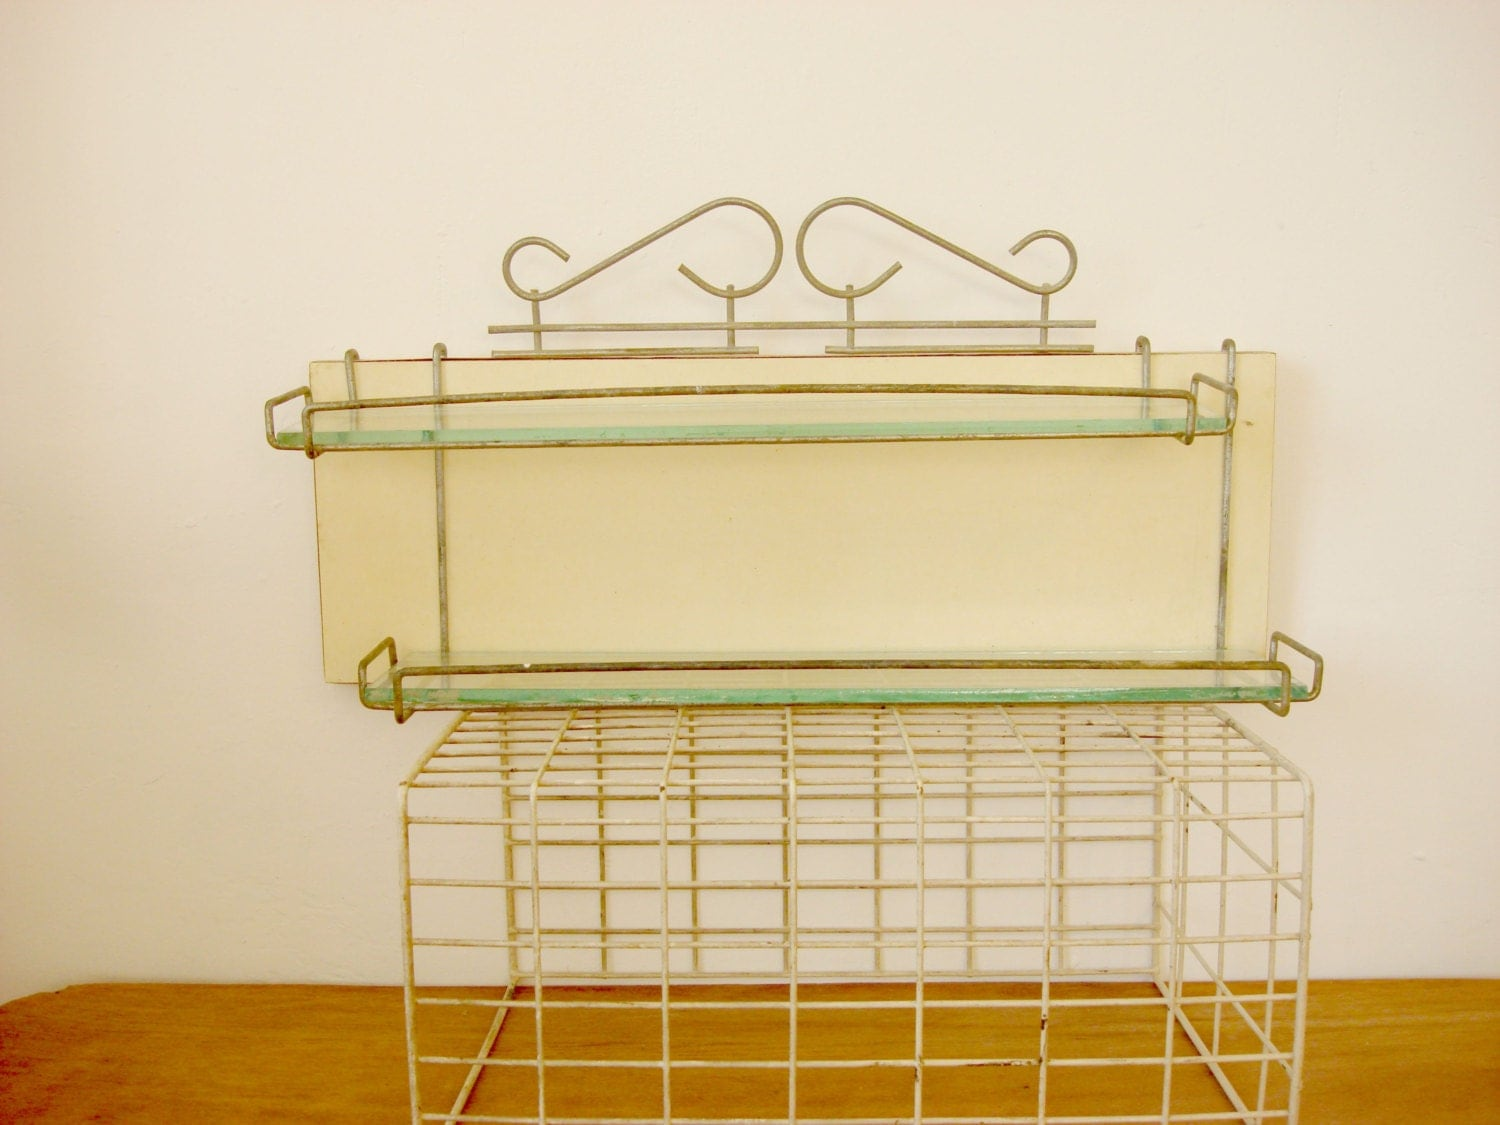 Popular Because Traditional Shelves Might Be Too Big For A Small Bathroom, You May Need To Look To Other Items For Shelving Ideas Hang A Floating Glass Shelf Or Two For Storage Glass Shelves Work Well In Small Bathrooms Because They Are